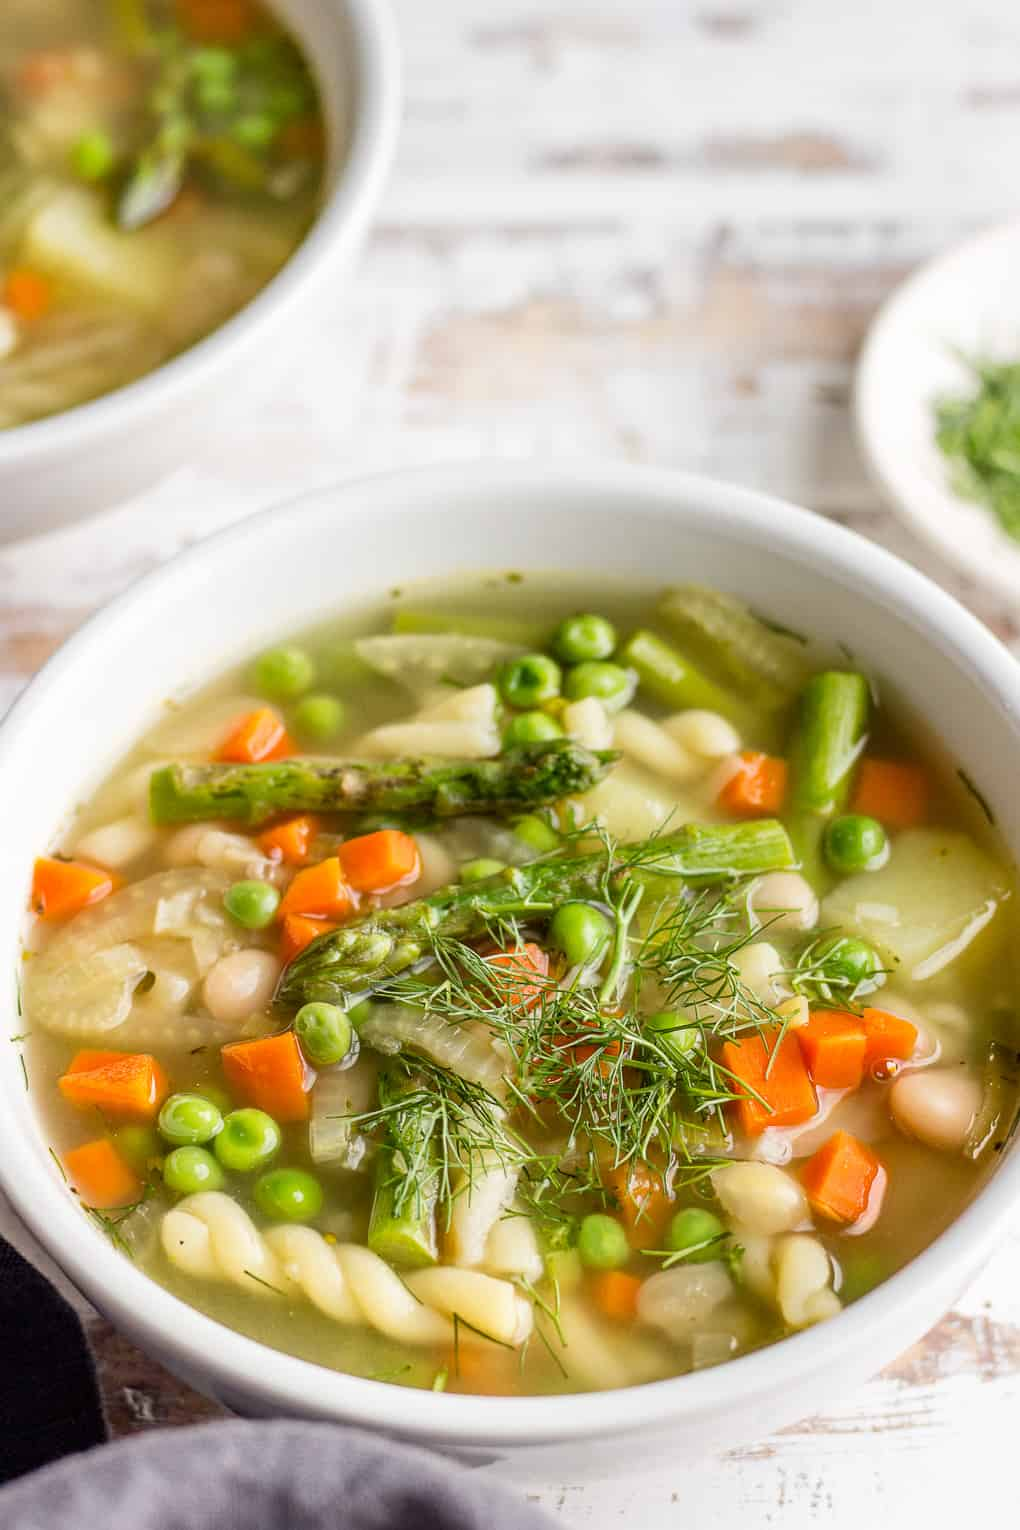 Soup with asparagus, green peas and pasta